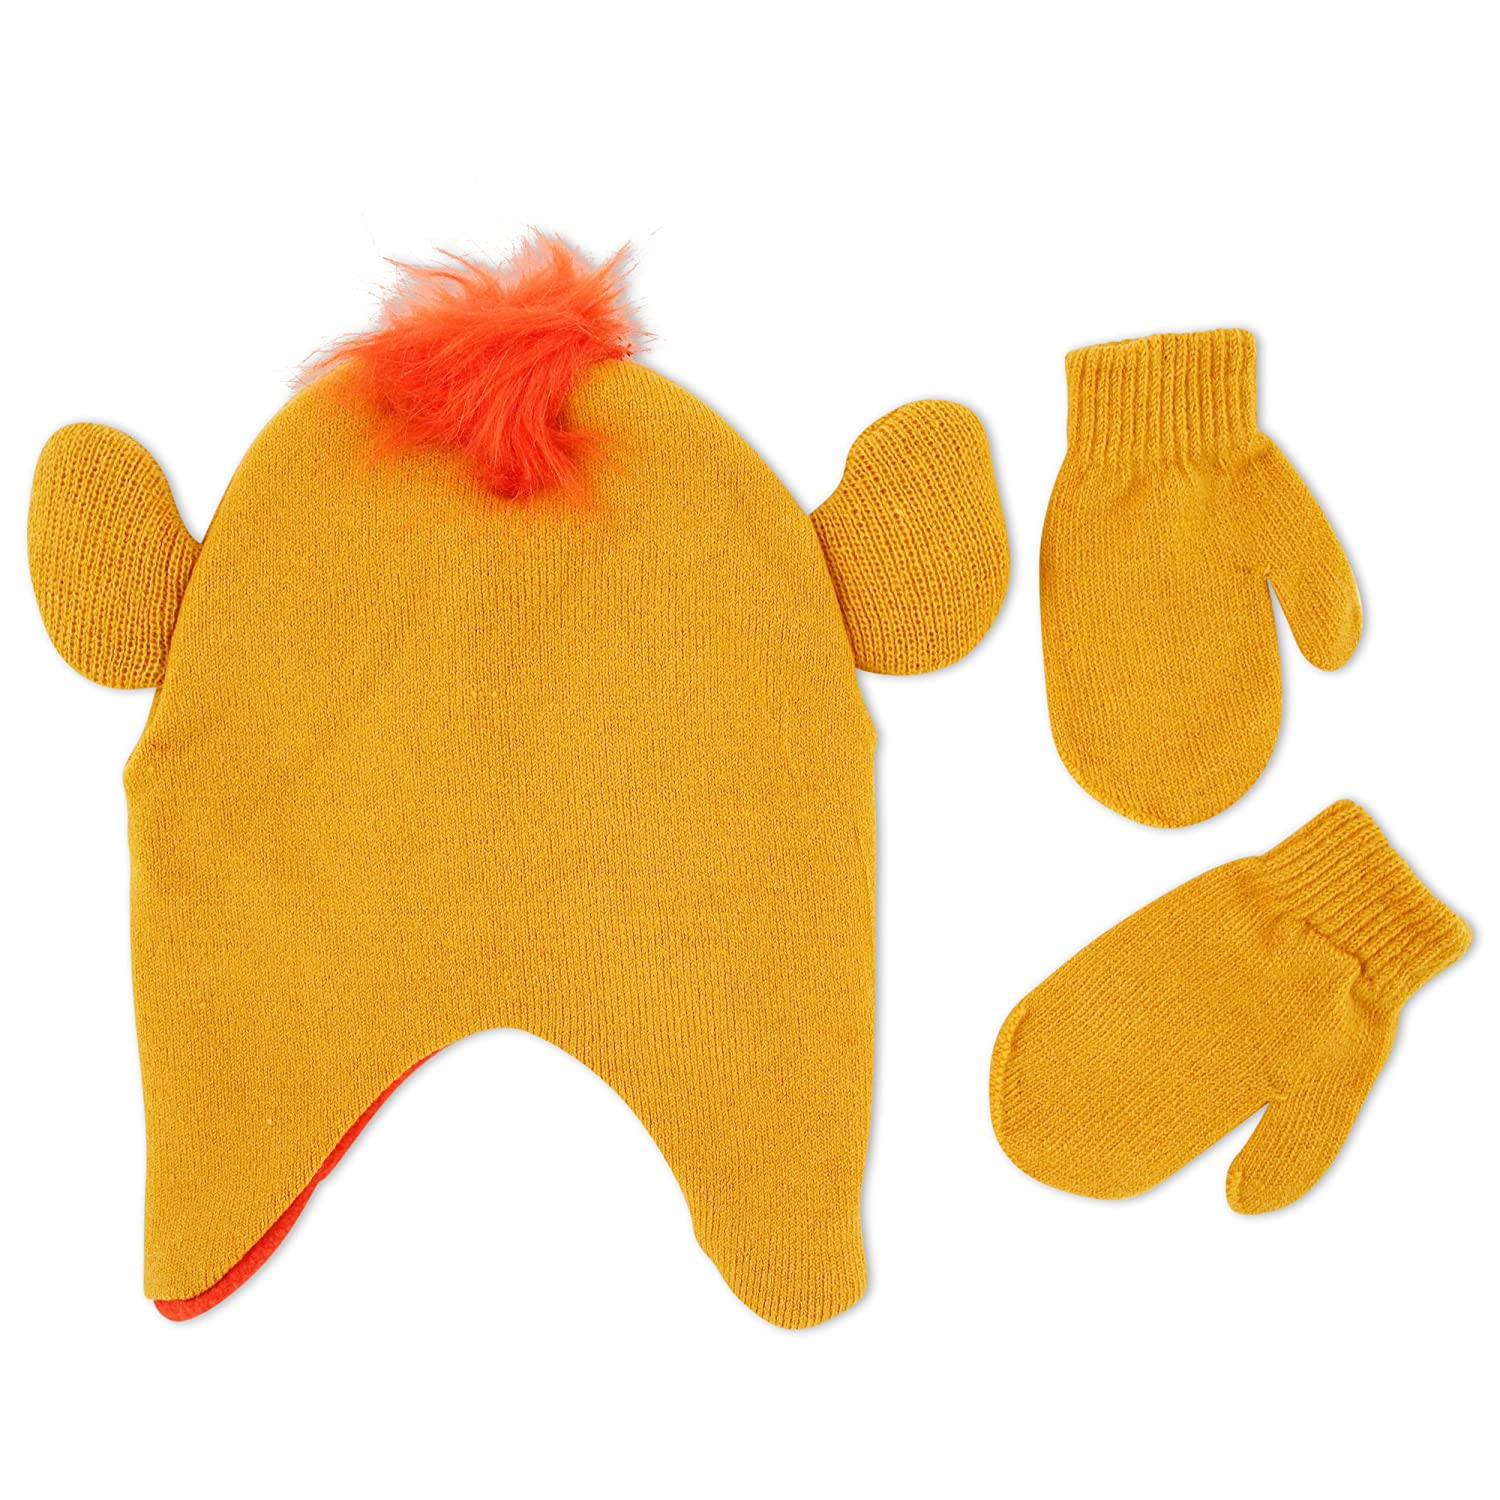 8ef08bb5ad4b00 Amazon.com: Disney Little Boys The Lion Guard Kion Acrylic Hosiery Knit  Winter Character Shaped Contoured Short Hat with Pinched Knit Ears and  Matching ...